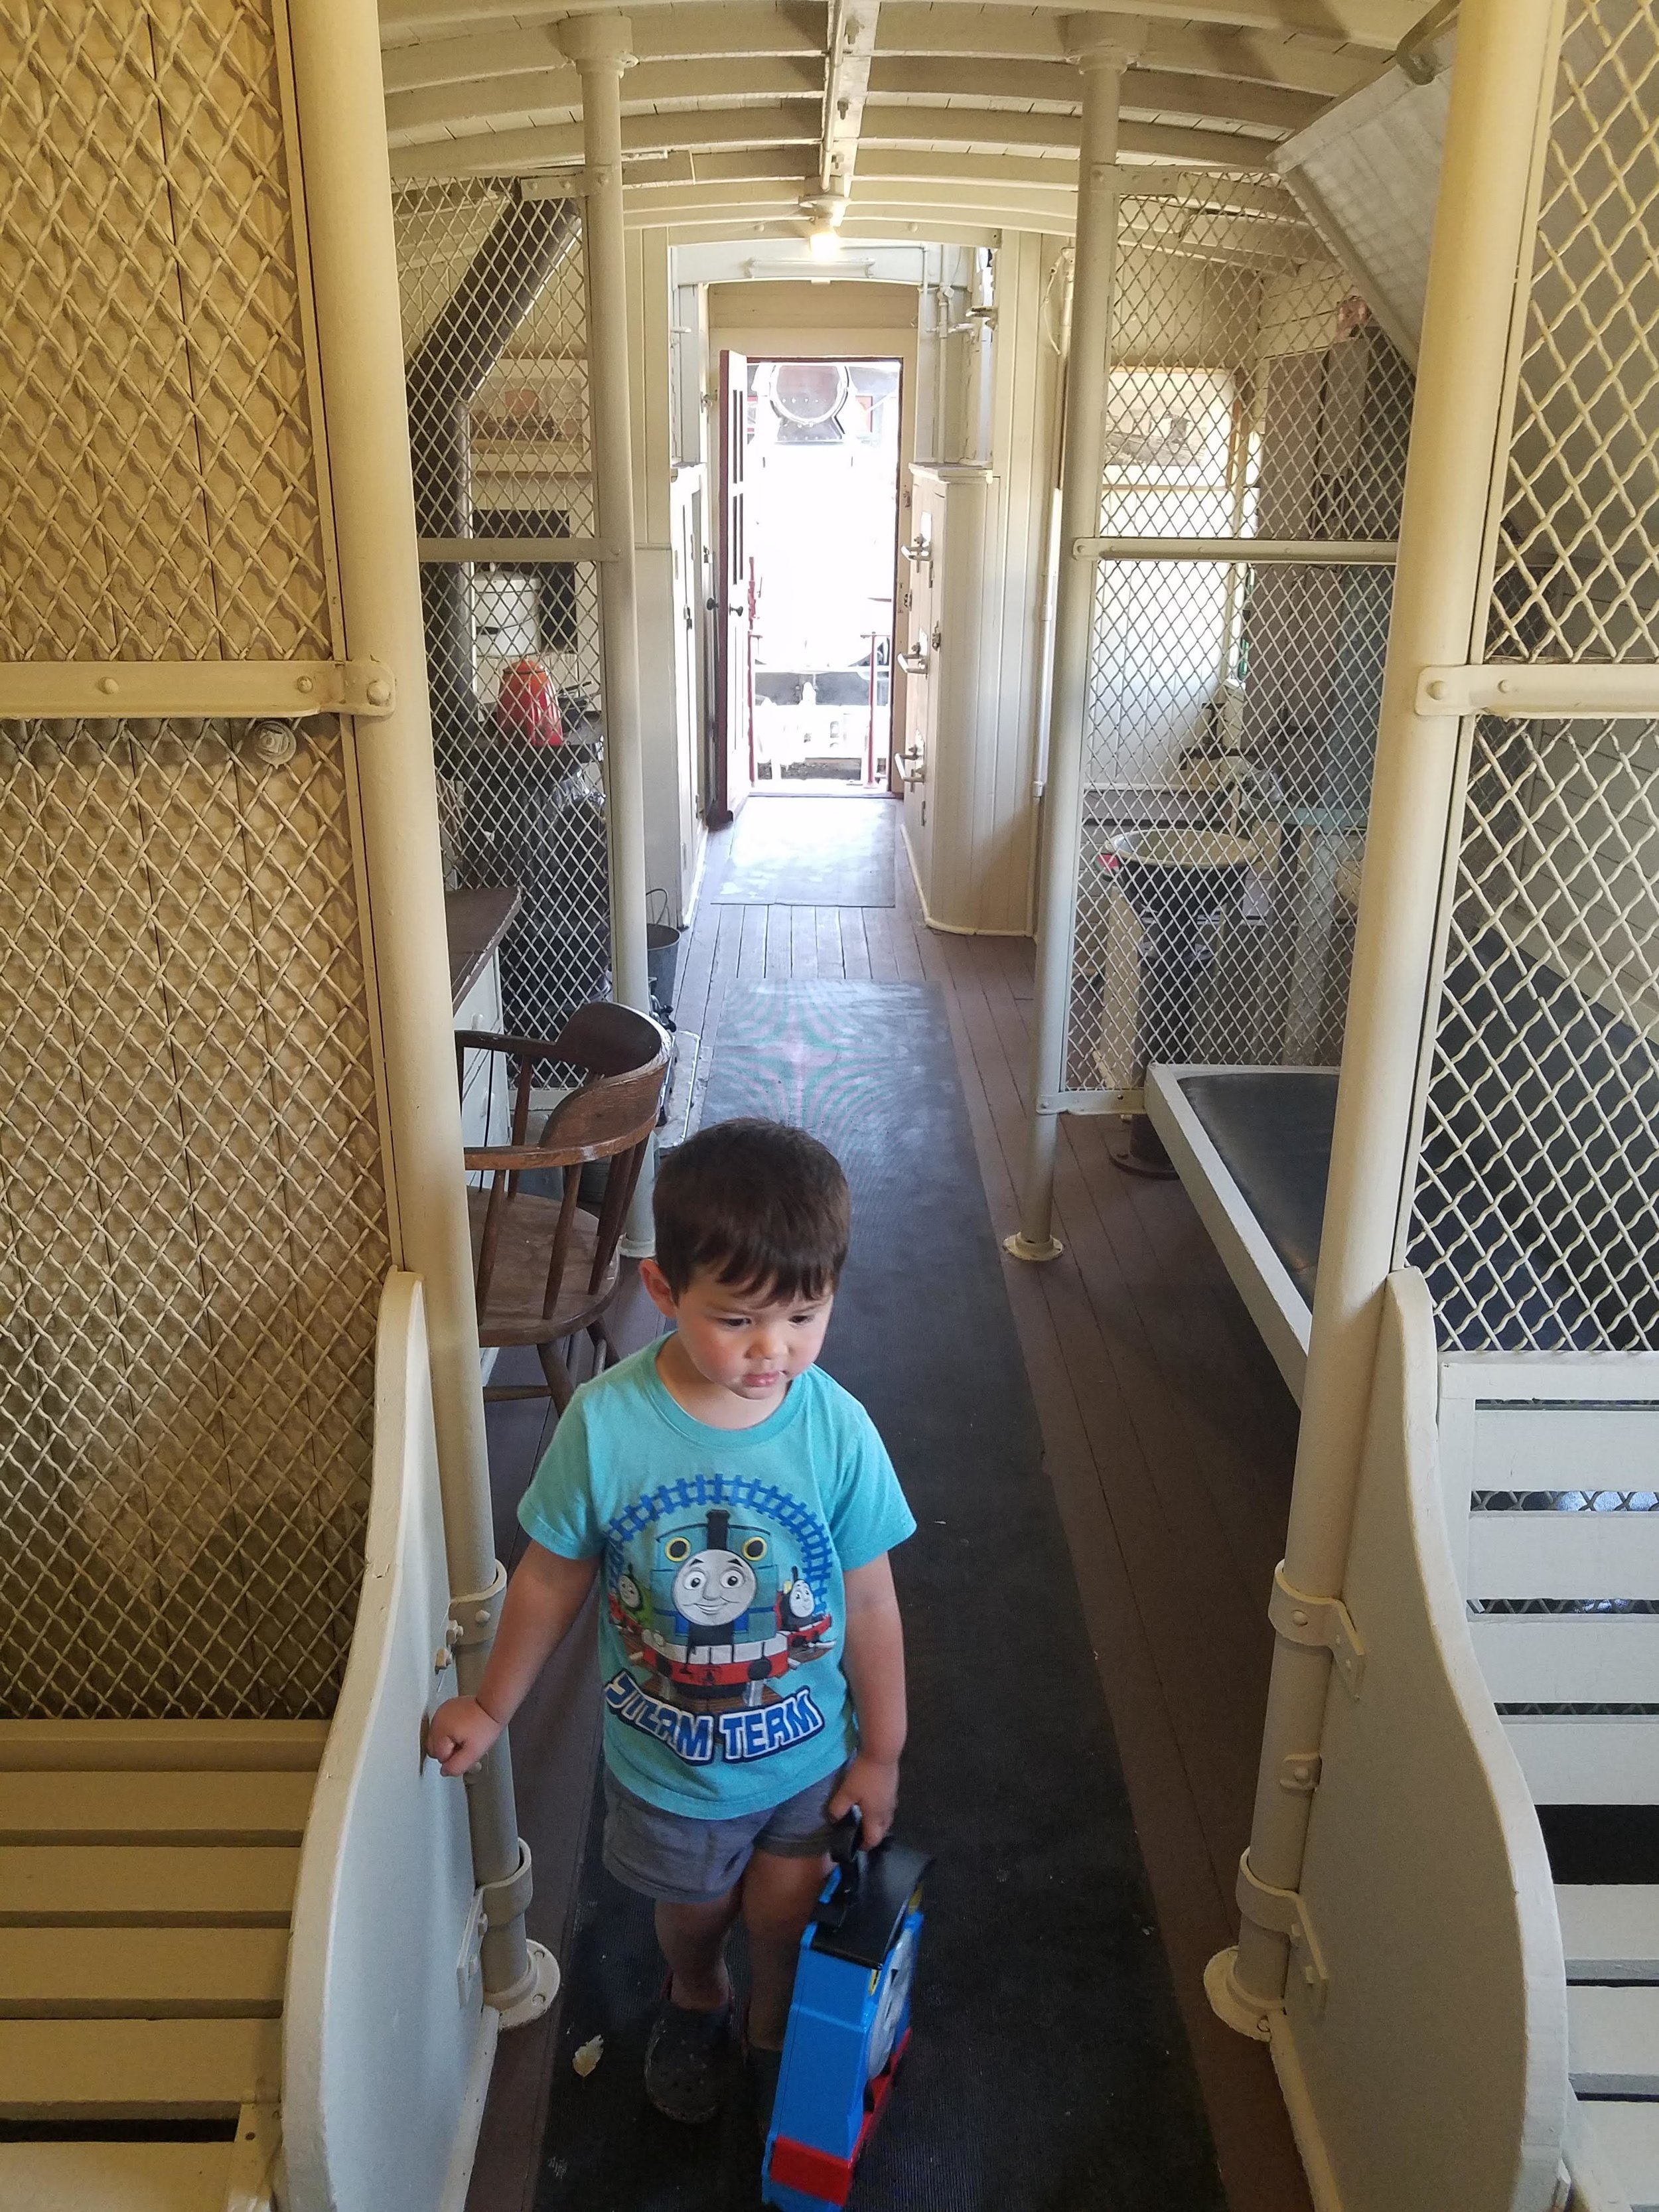 Exploring the caboose.